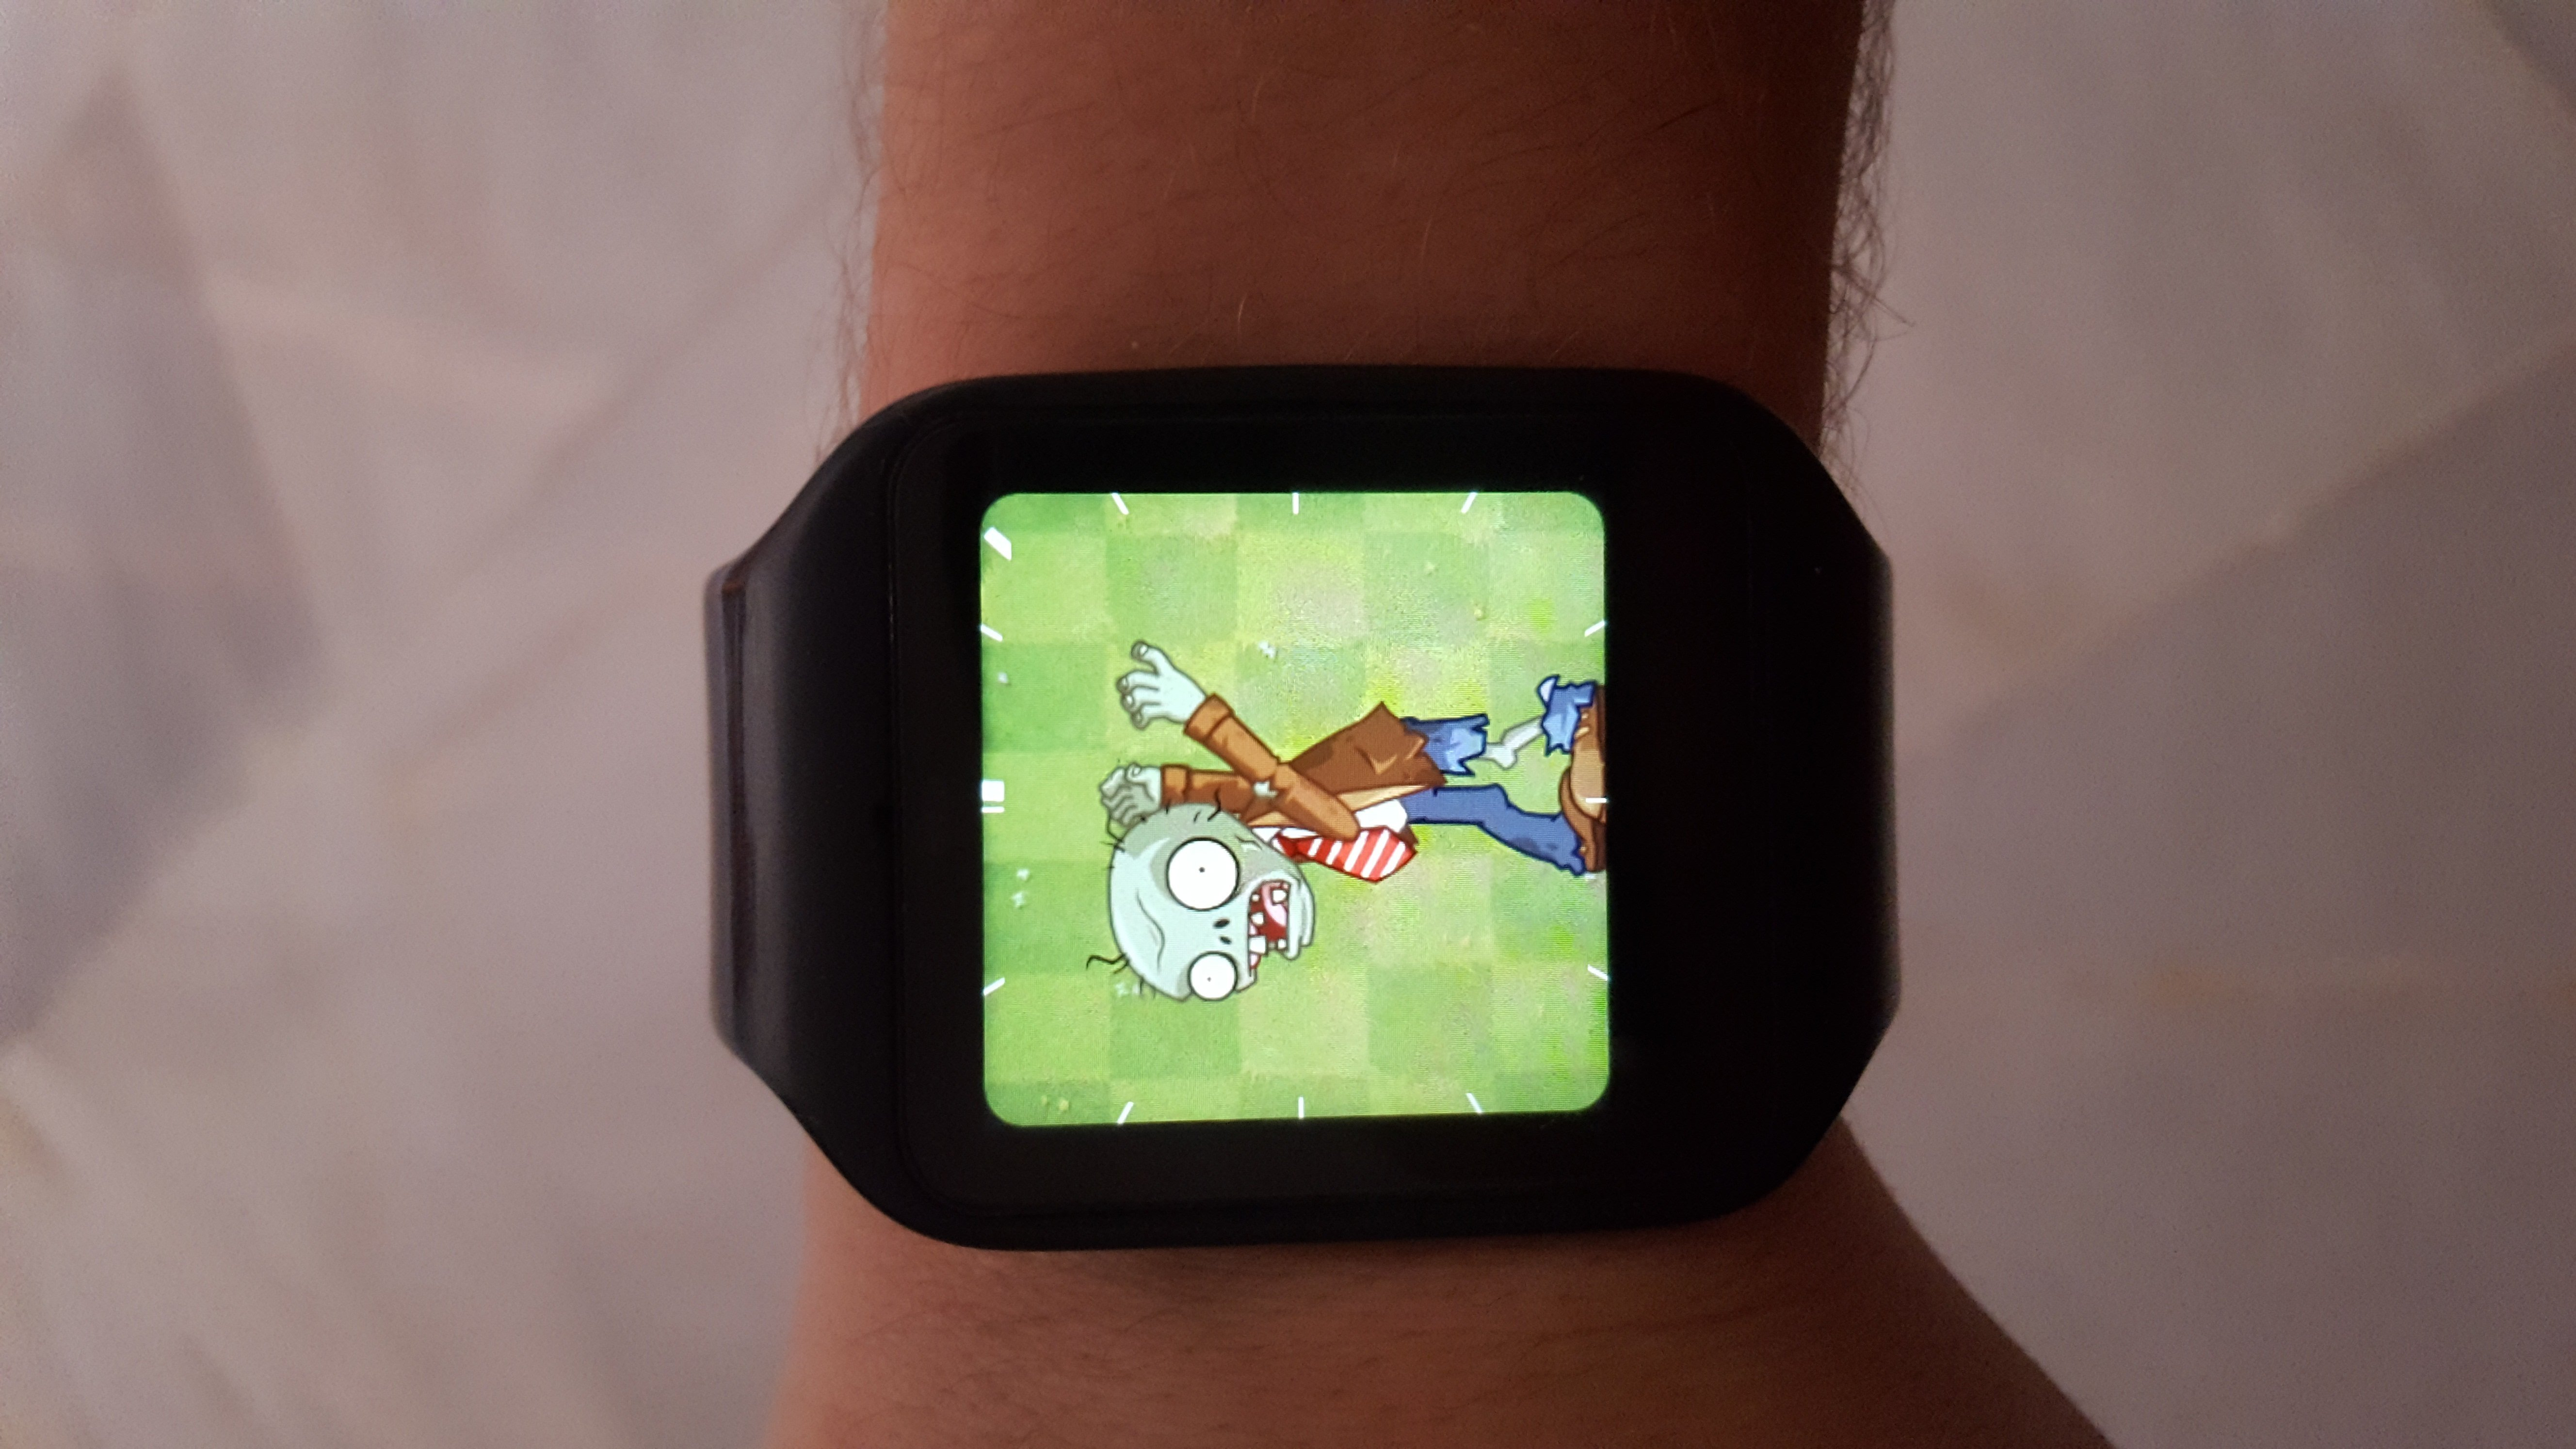 Plants vs. Zombies Watch Face Android image 2